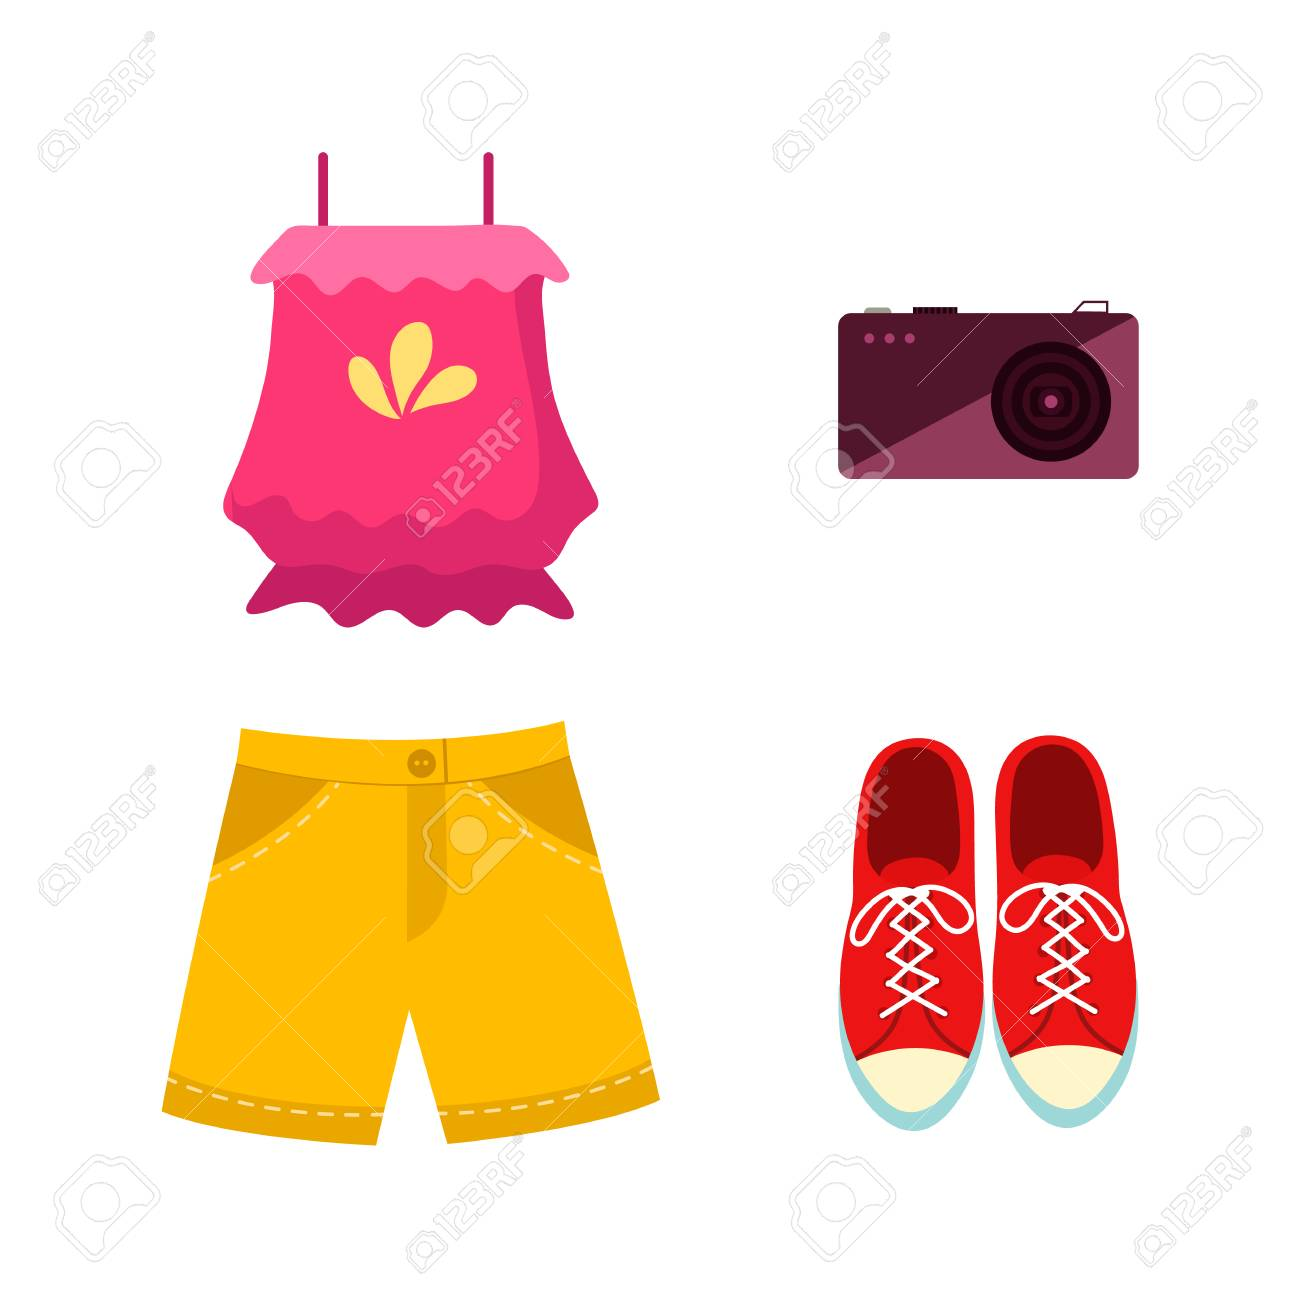 vector flat woman outfit apparel accessories set. Red sneakers, mobile photo camera, yellow shorts and pink funny backpack. Fashionable trendy Isolated illustration on a white background. - 92137020